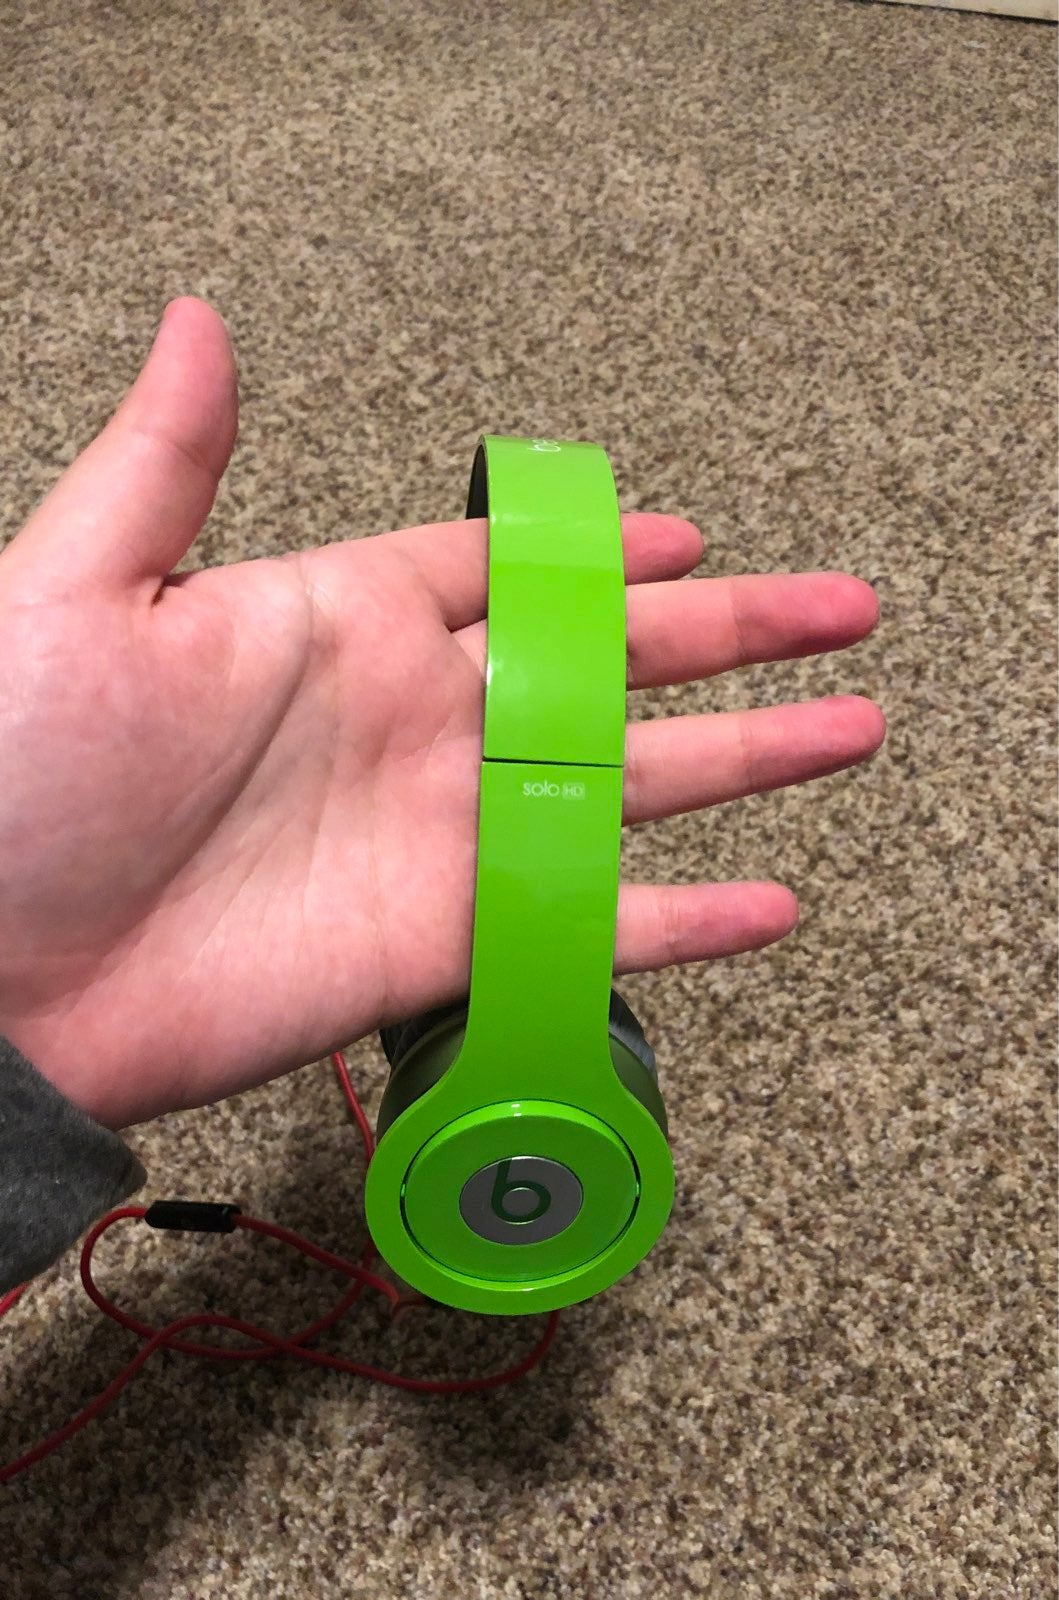 Wired Beats Headphones by Dr. Dre